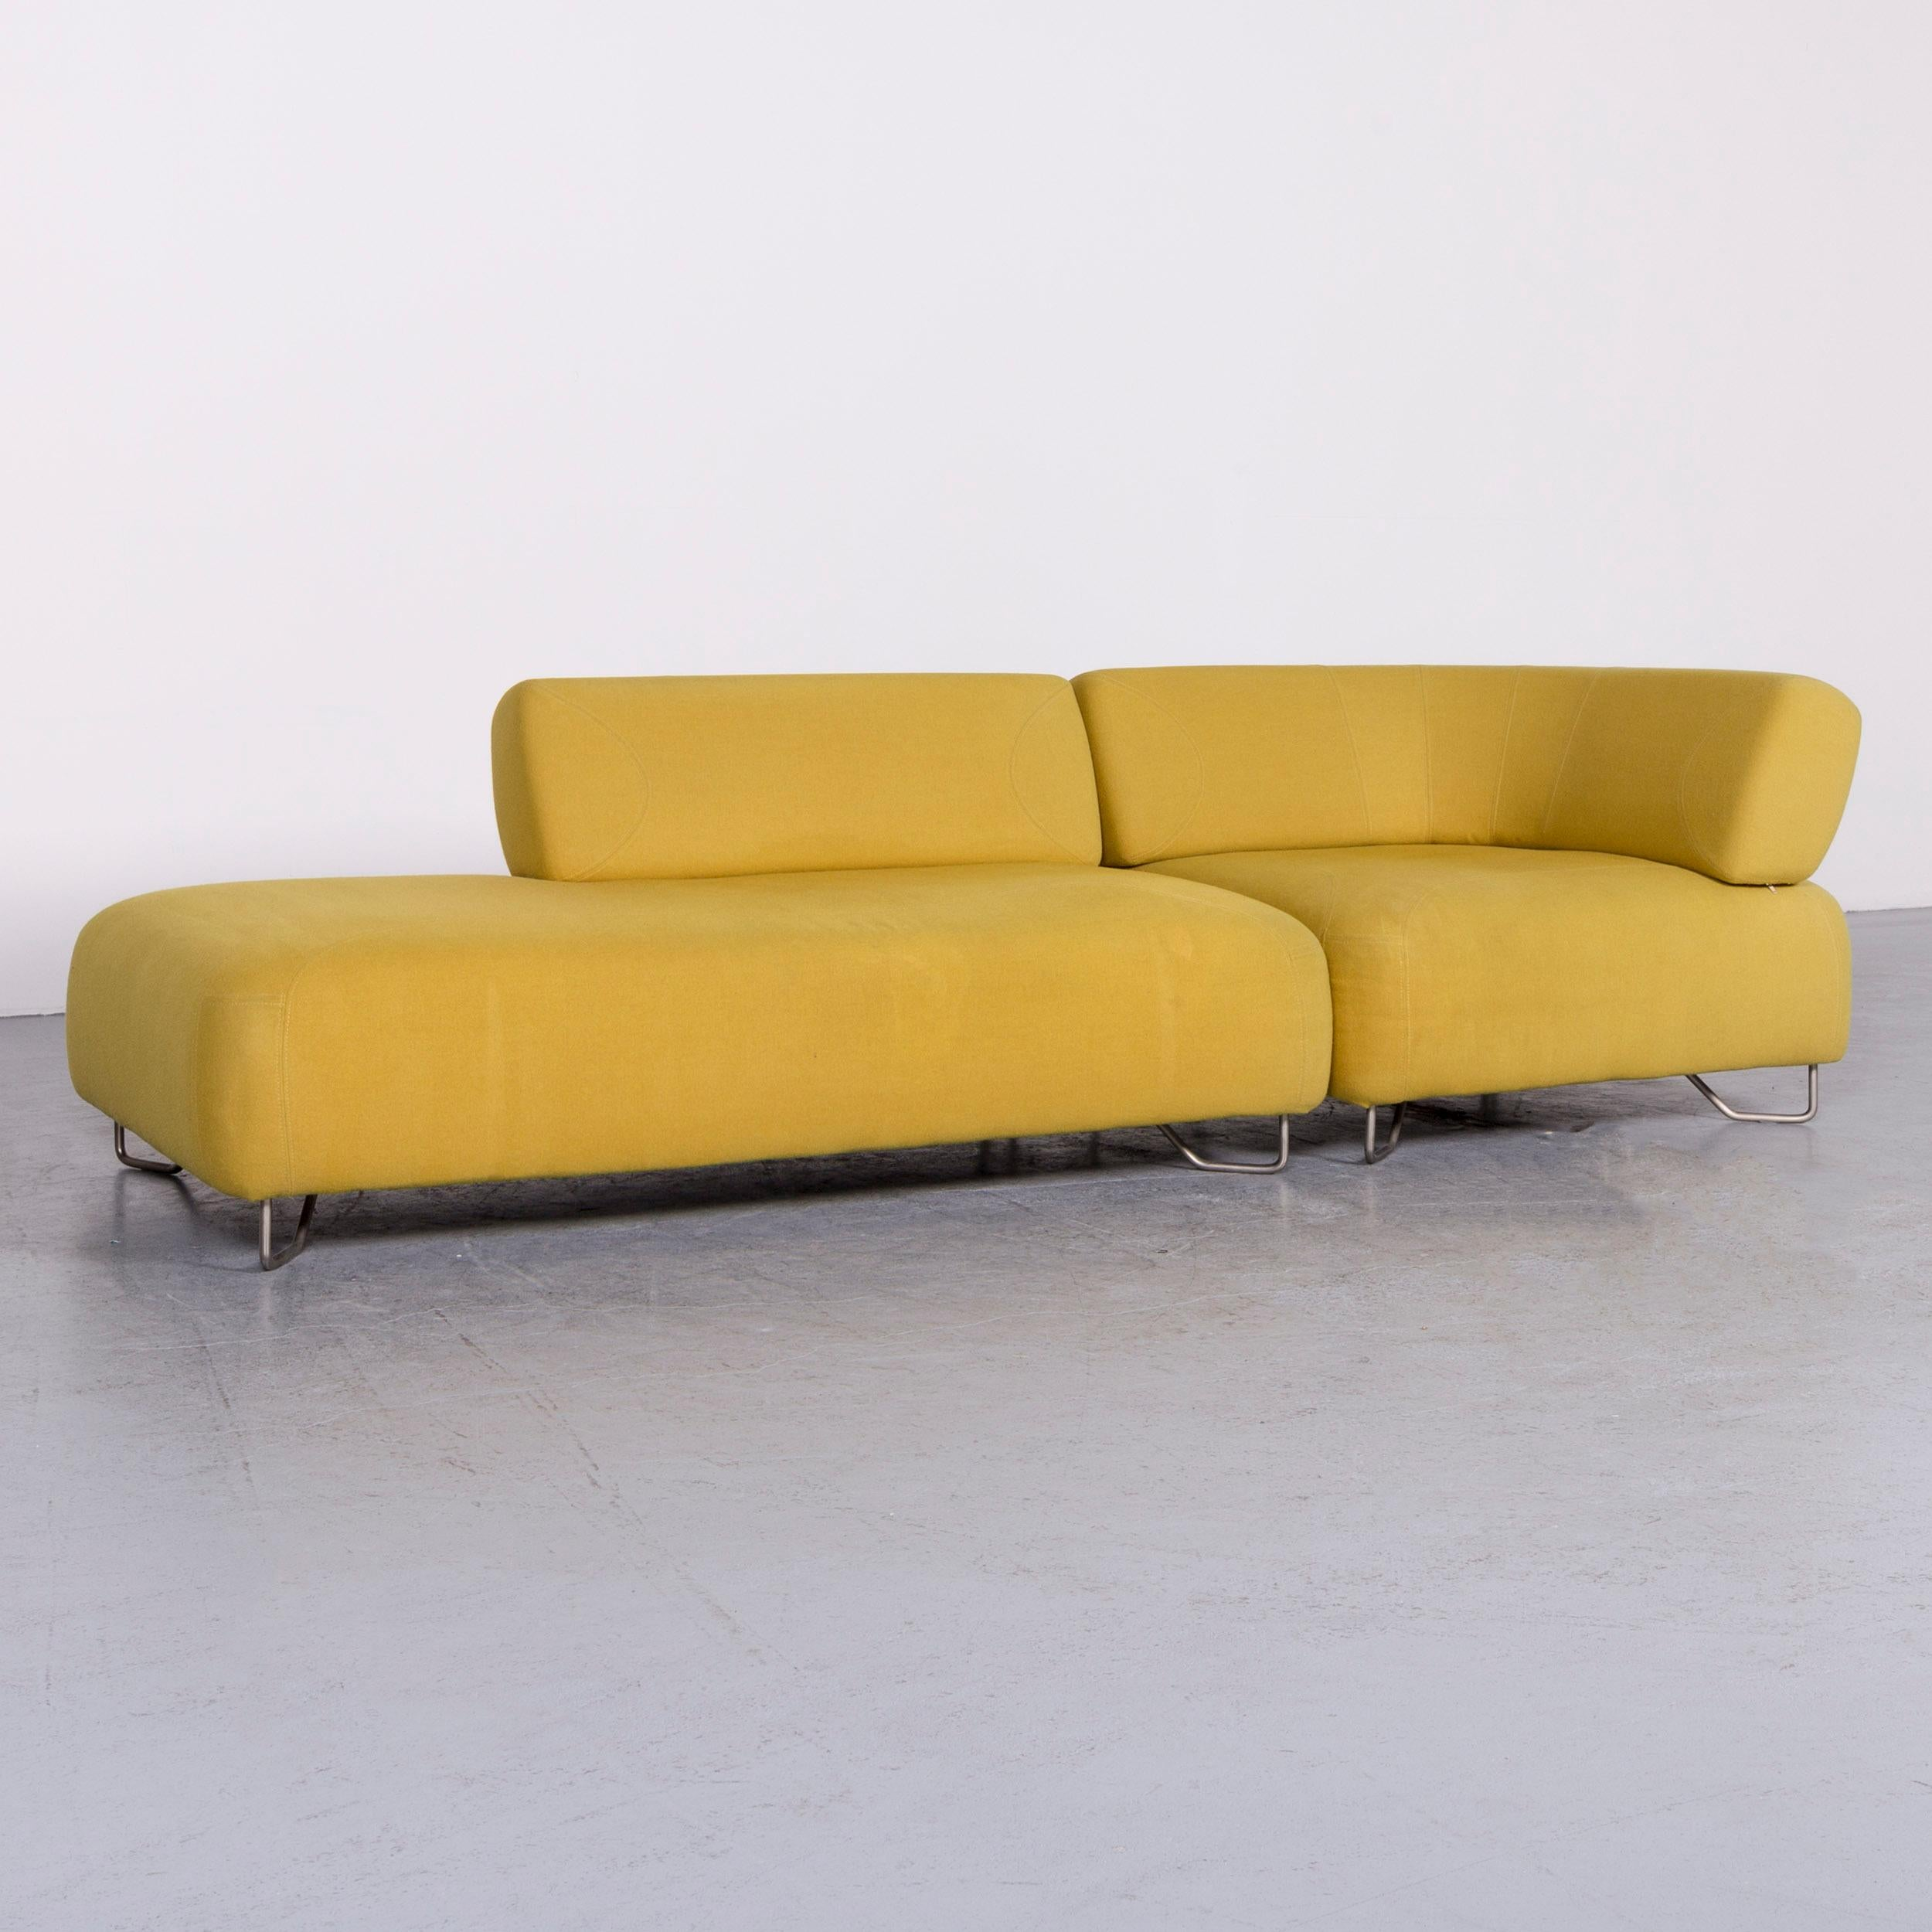 German BoConcept Designer Sofa Yellow Three Seat Couch For Sale